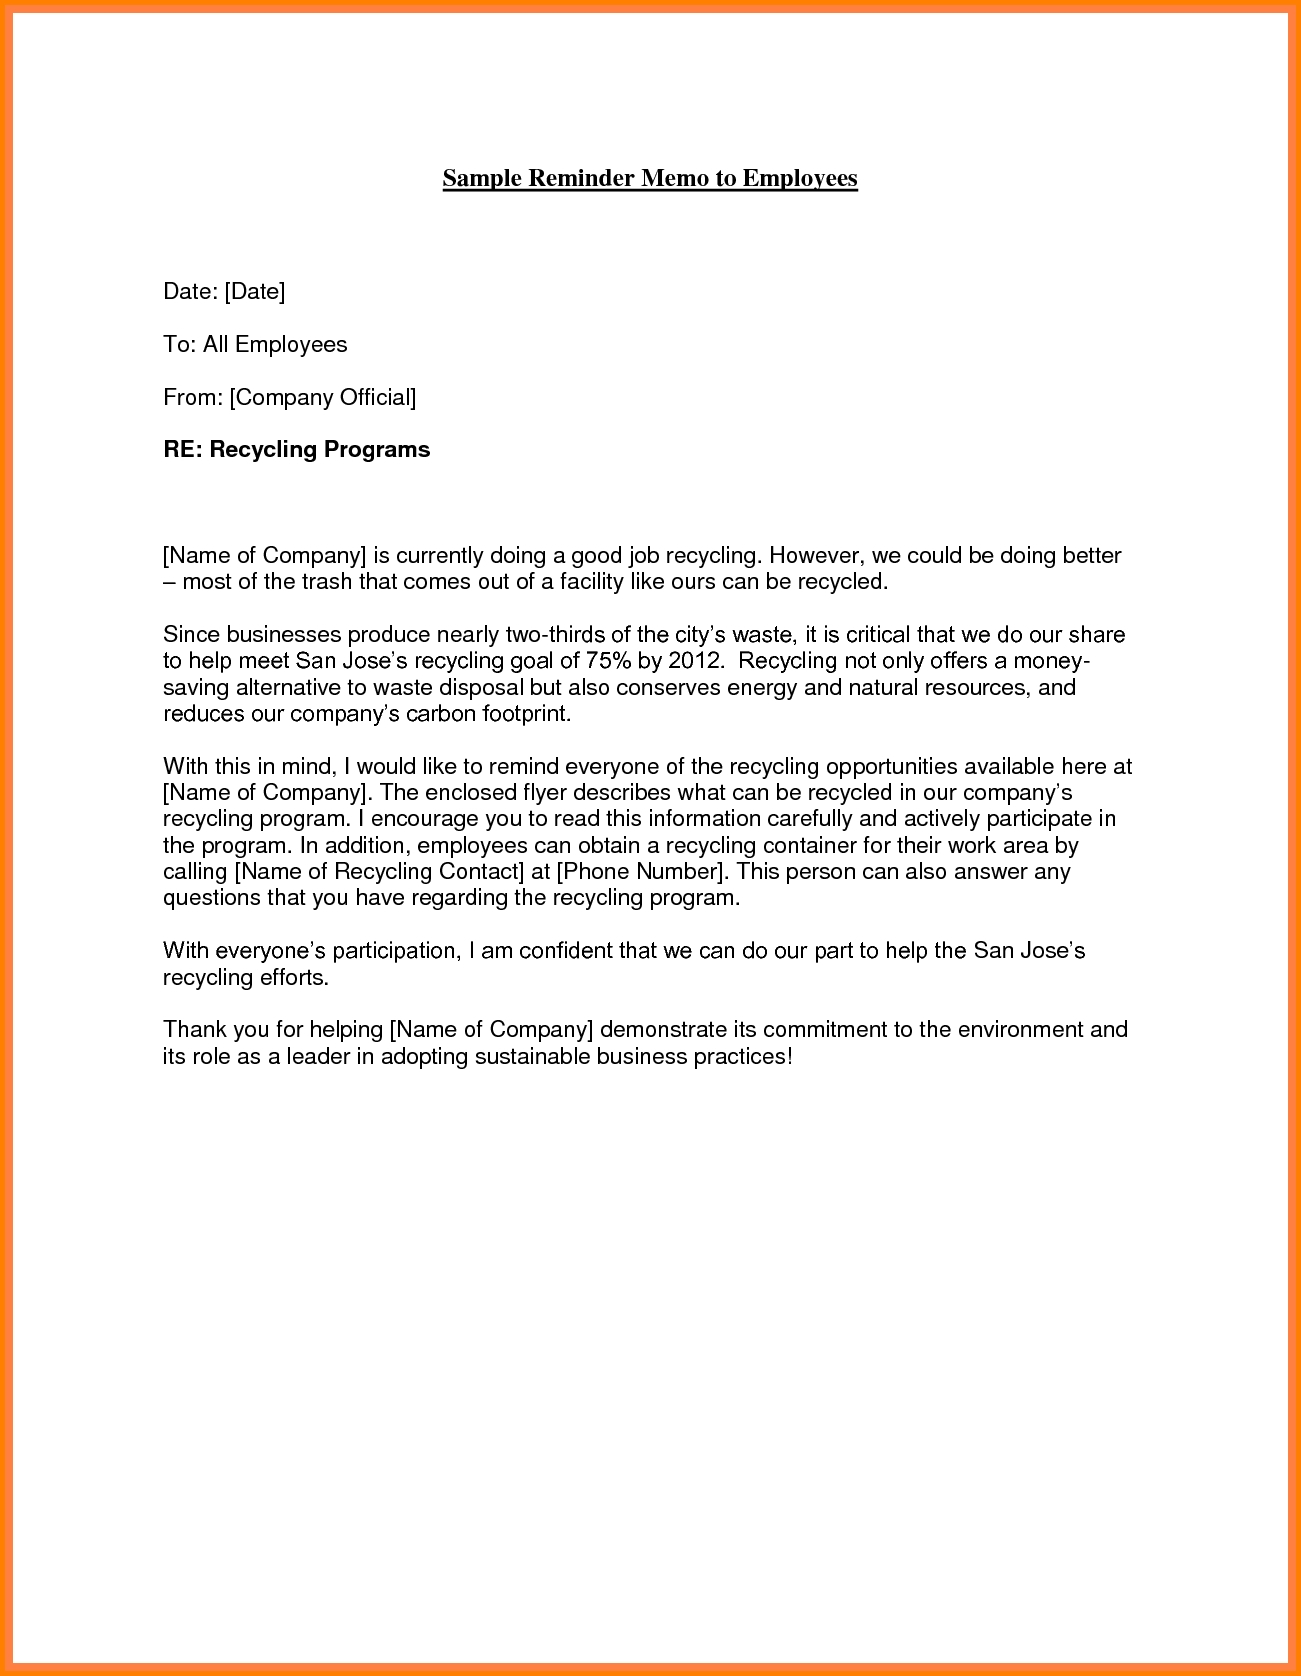 Patent Infringement Letter Template - Sample Legal Letter Template